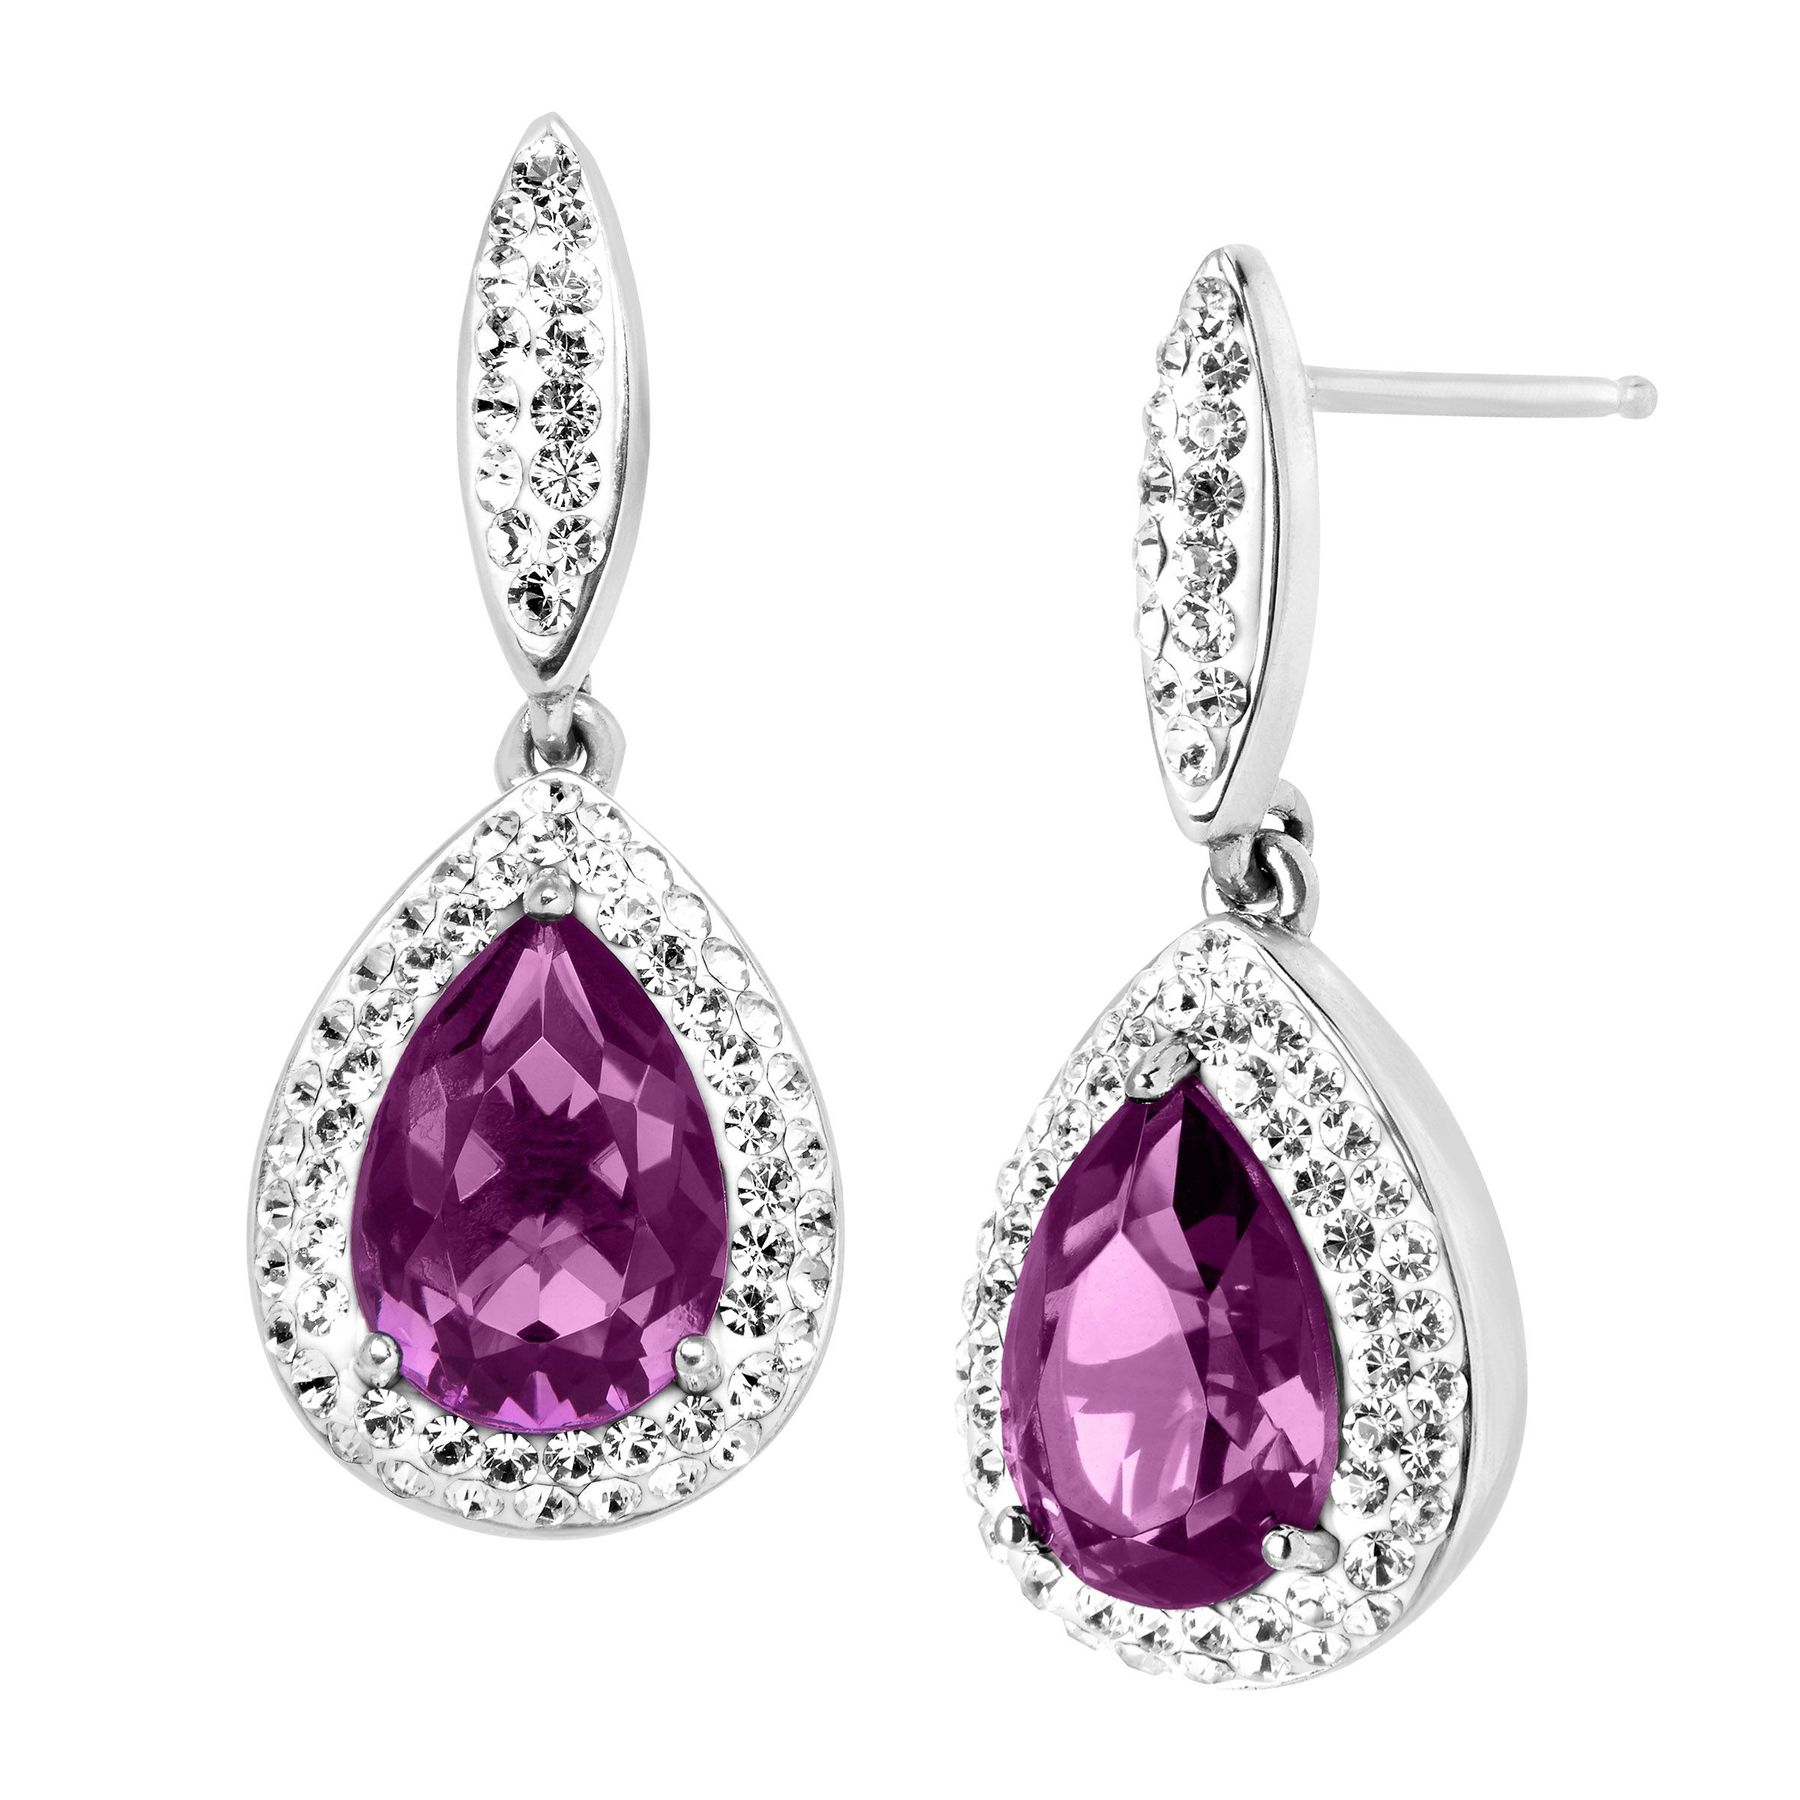 plated drop earring cubic from women fashion hyperbole romantic high jewelry zircon colors purple color gold elegant in big item earrings quality